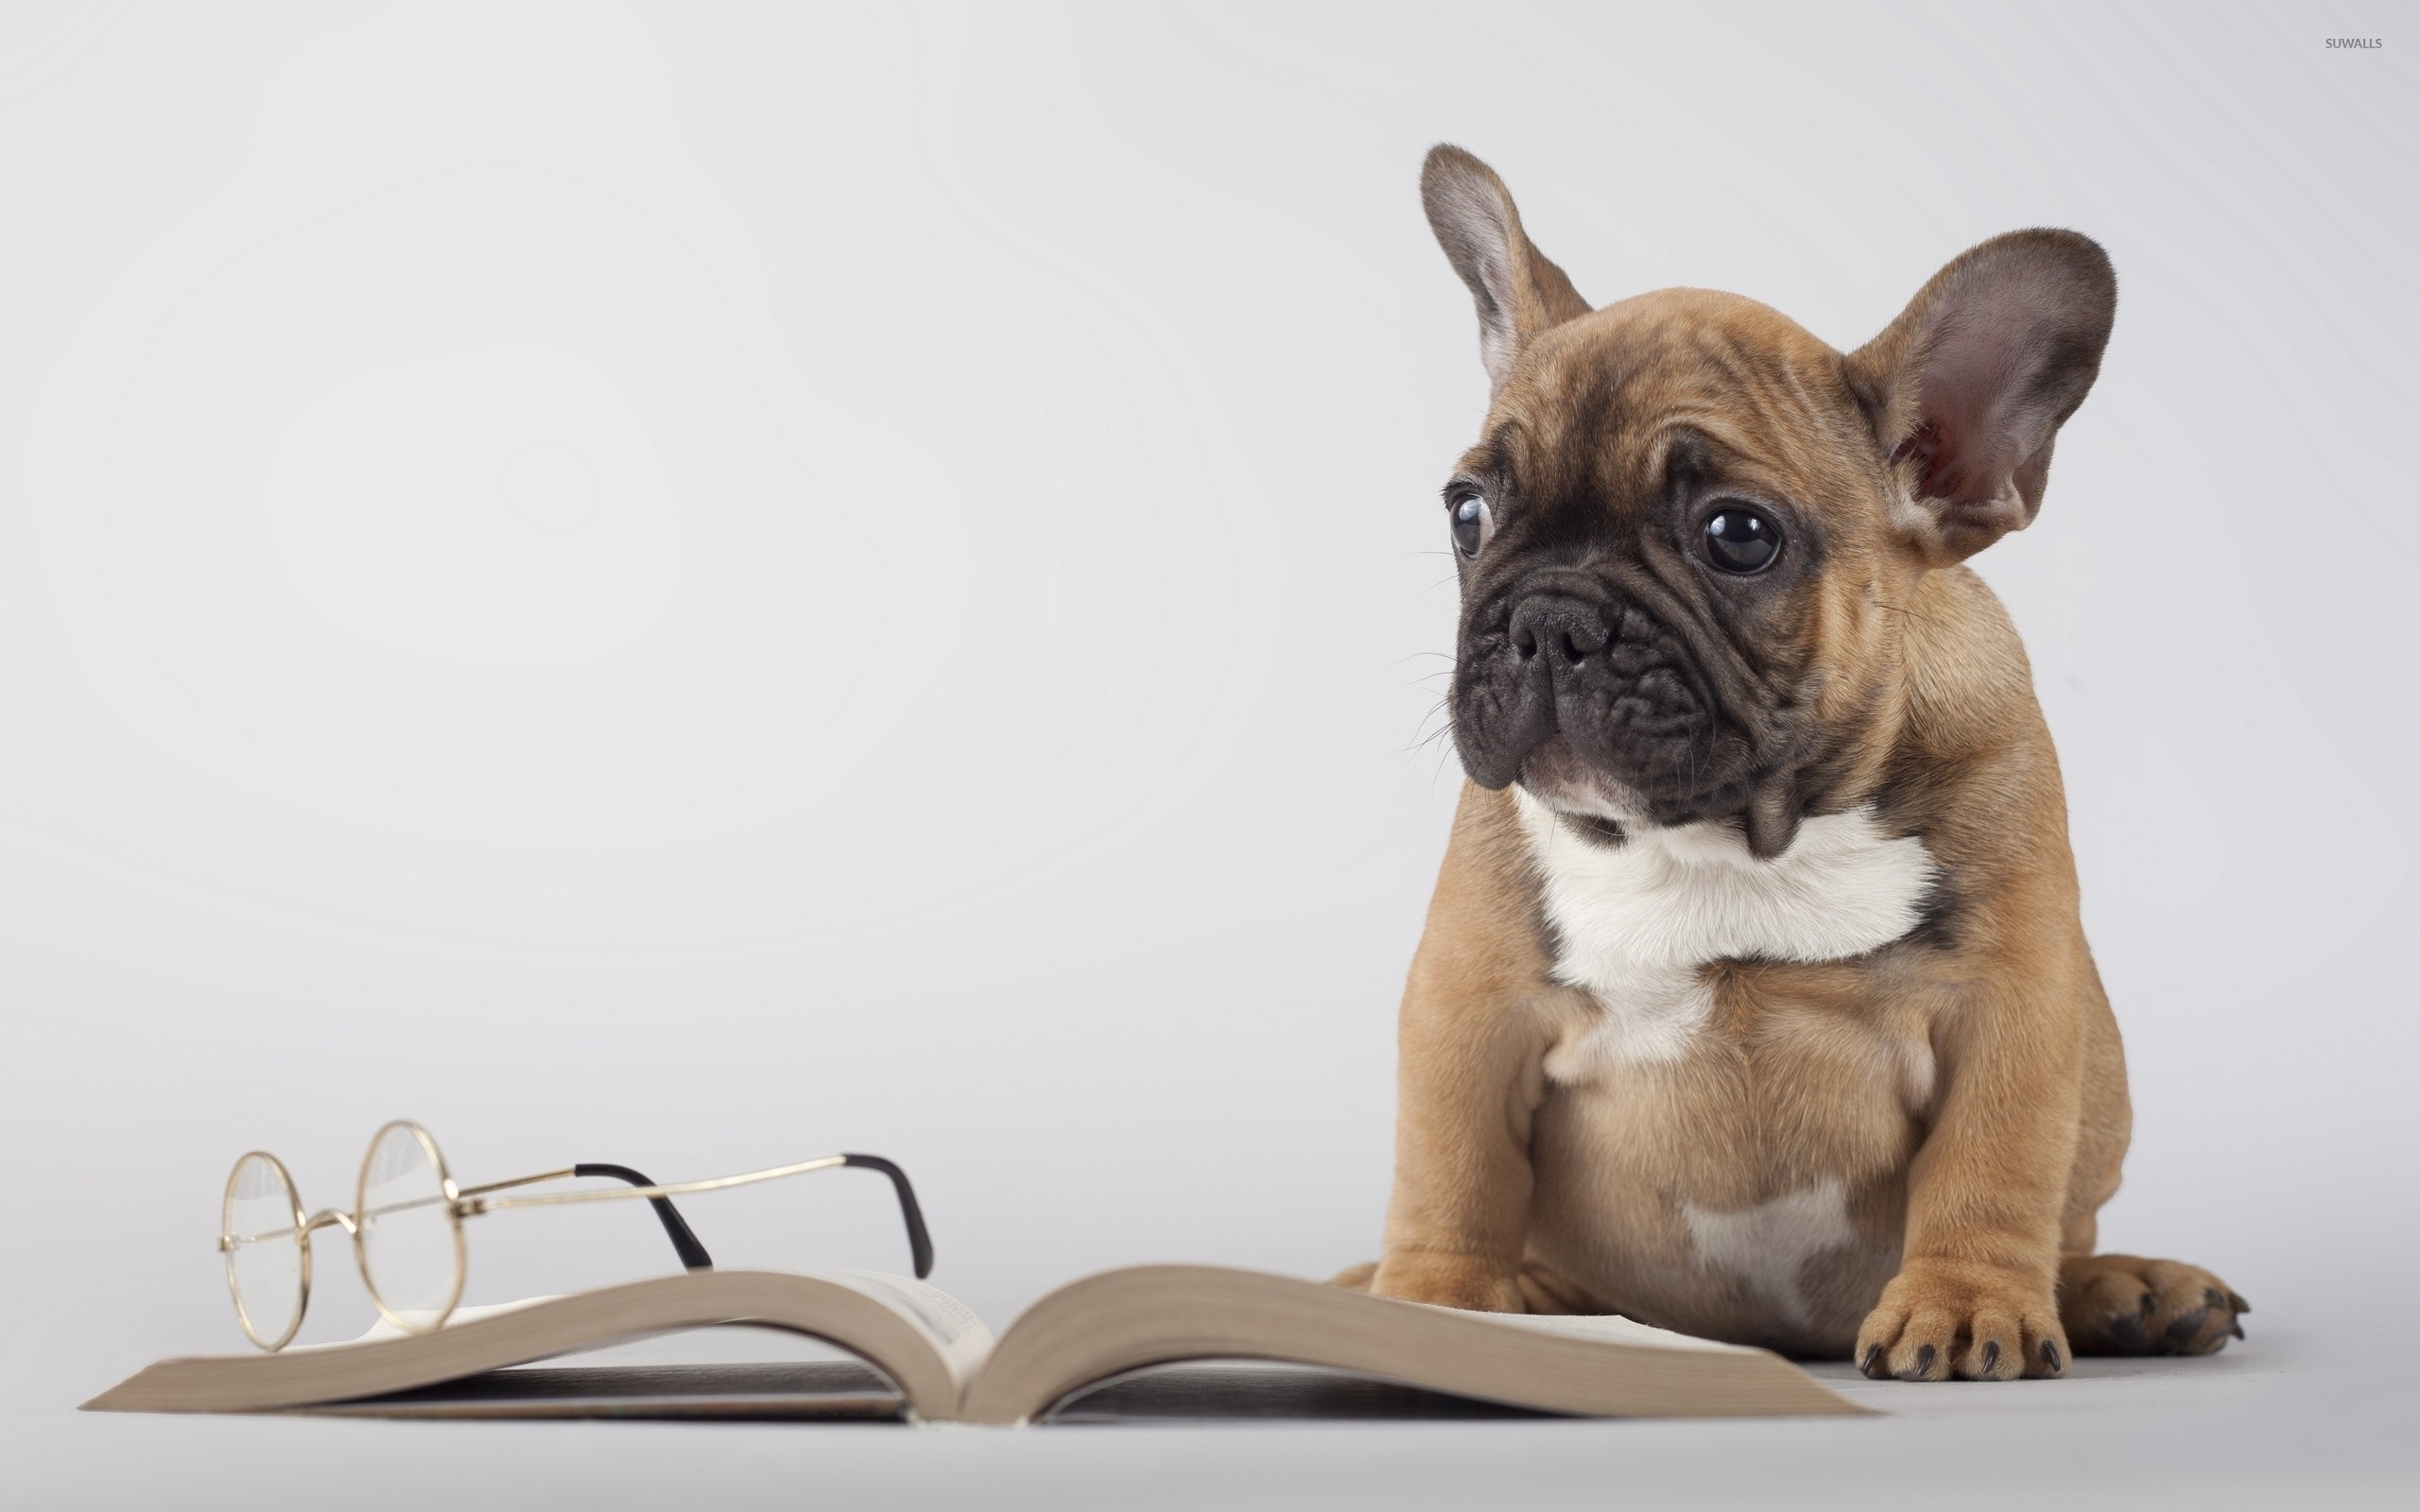 2560x1600 Cute pug puppy next to a book wallpaper  jpg